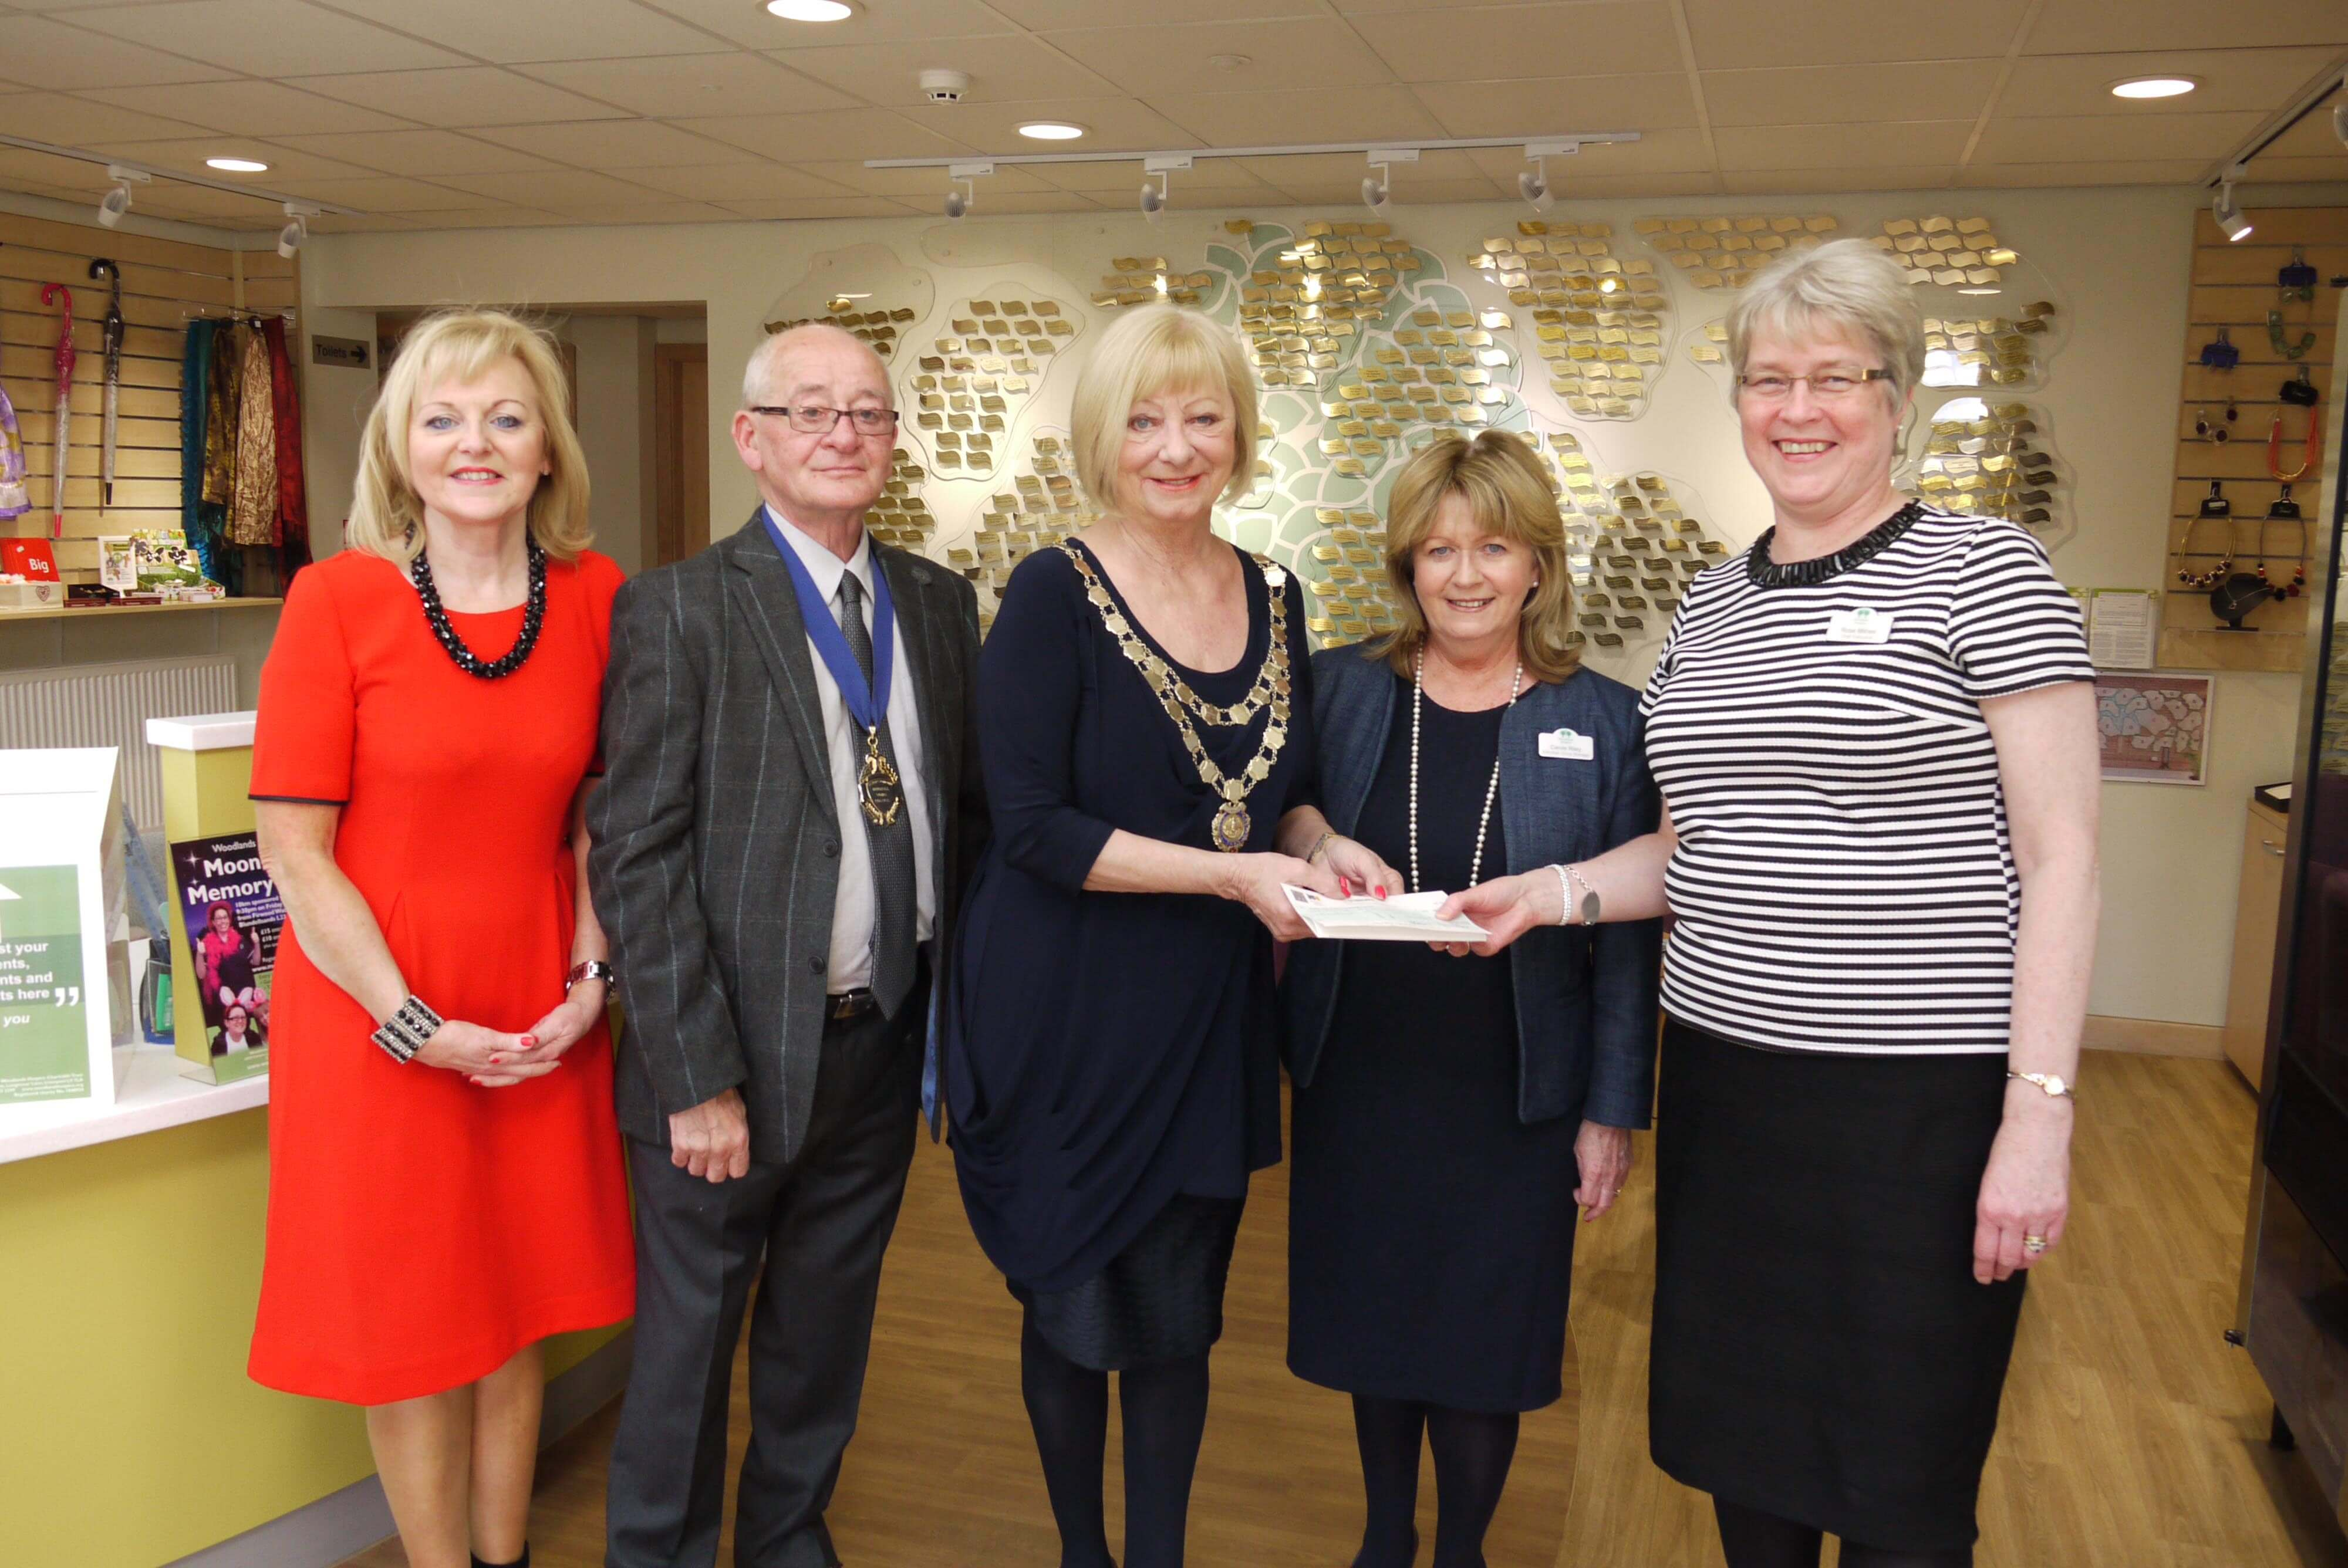 Mayor of Maghull Cllr Joan Deegan with Cllr Rod Deegan and members of Woodlands Hospice